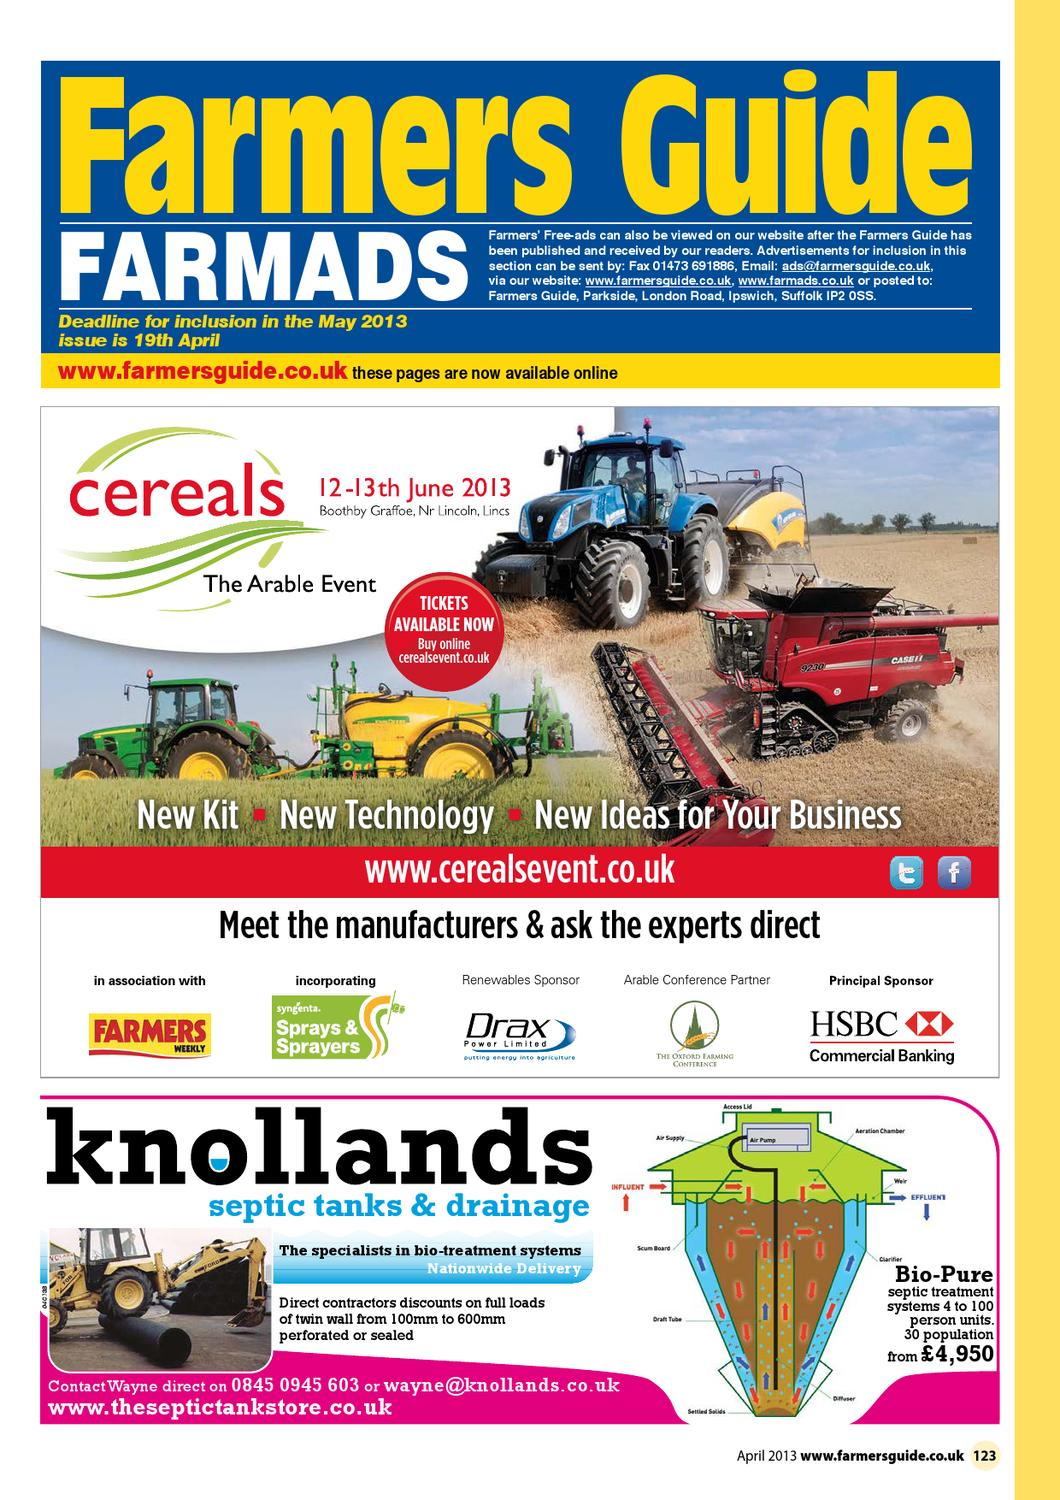 Farmers Guide classified section April 2013 by Farmers Guide - issuu